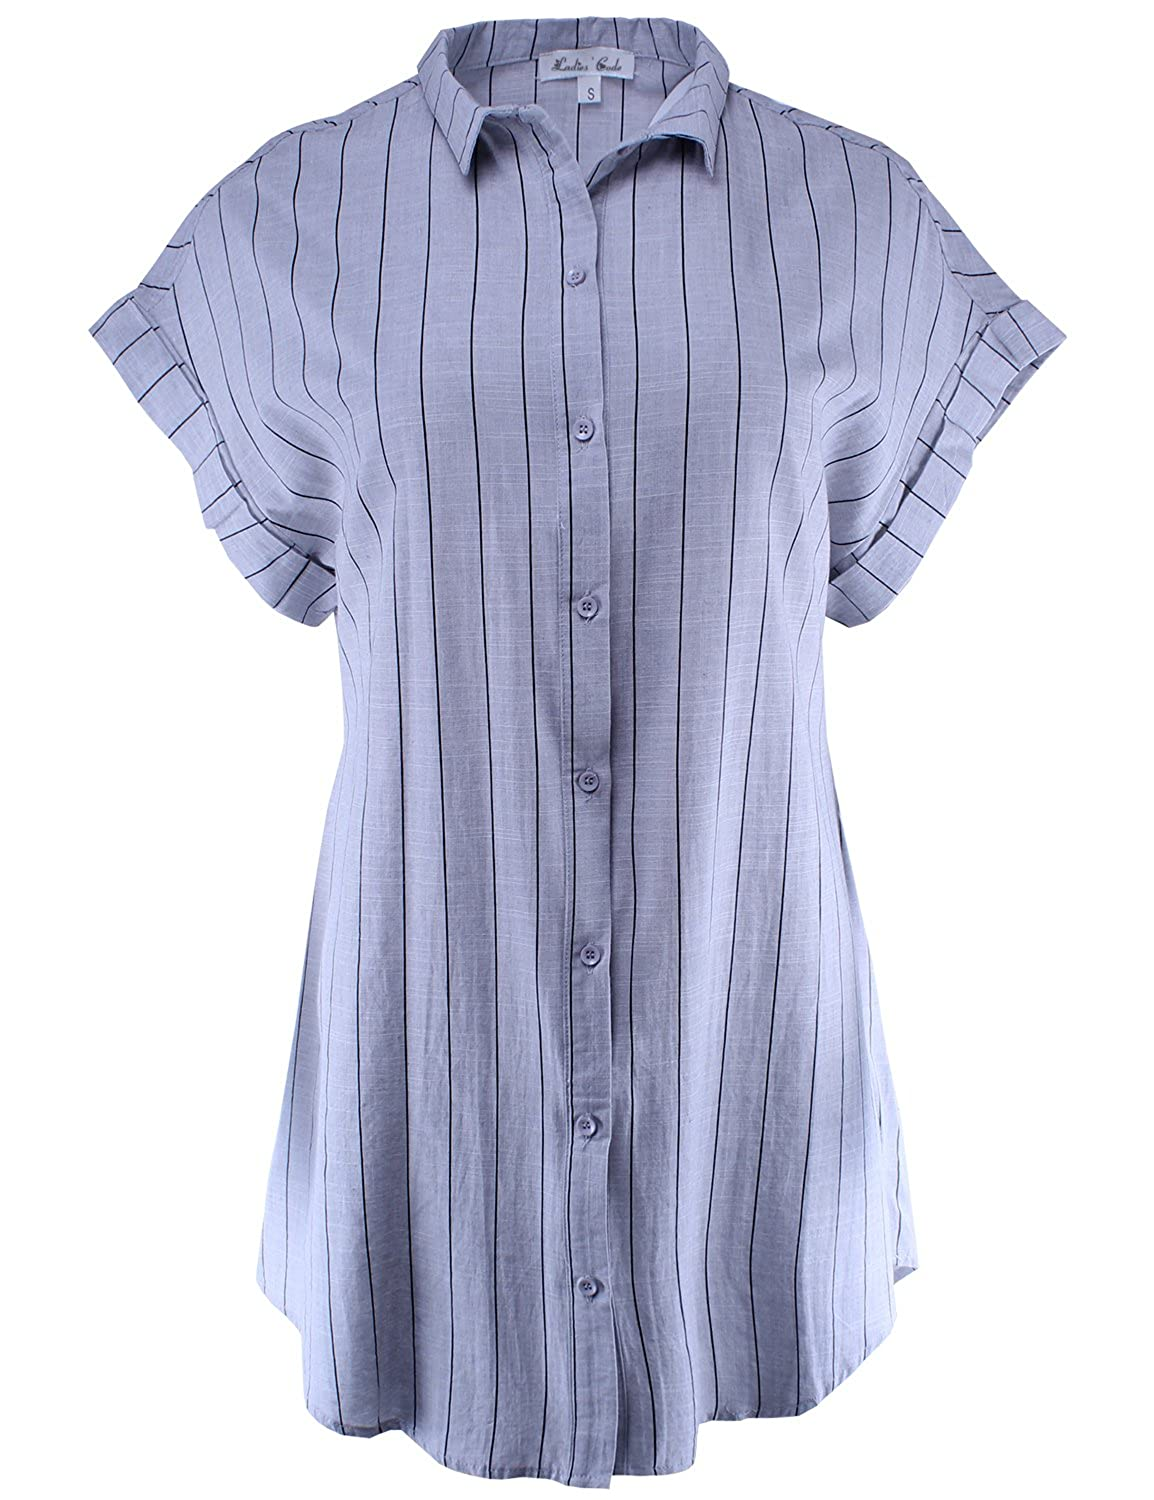 Ladies Code Womens Short Sleeve Plaid Or Vertical Stripe Button Down Tunic Shirt Dress LCTS031